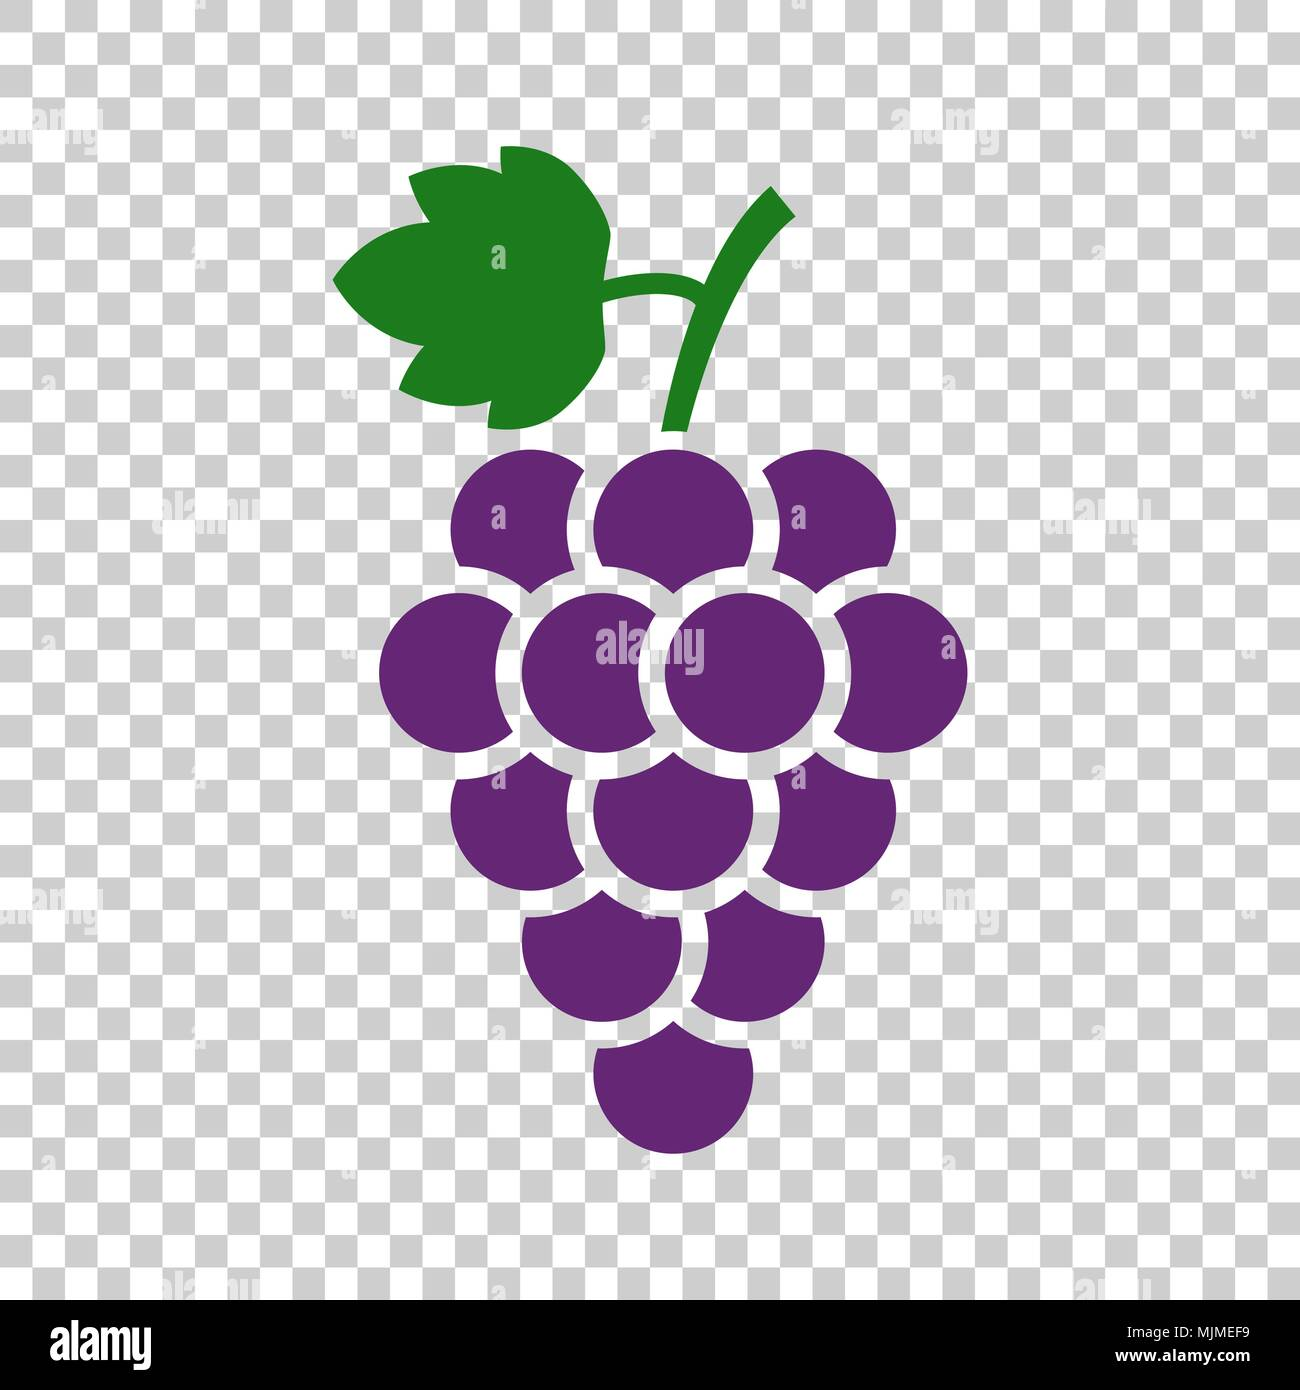 Grape fruit with leaf icon. Vector illustration on isolated transparent background. Business concept Bunch of wine grapevine pictogram. - Stock Vector